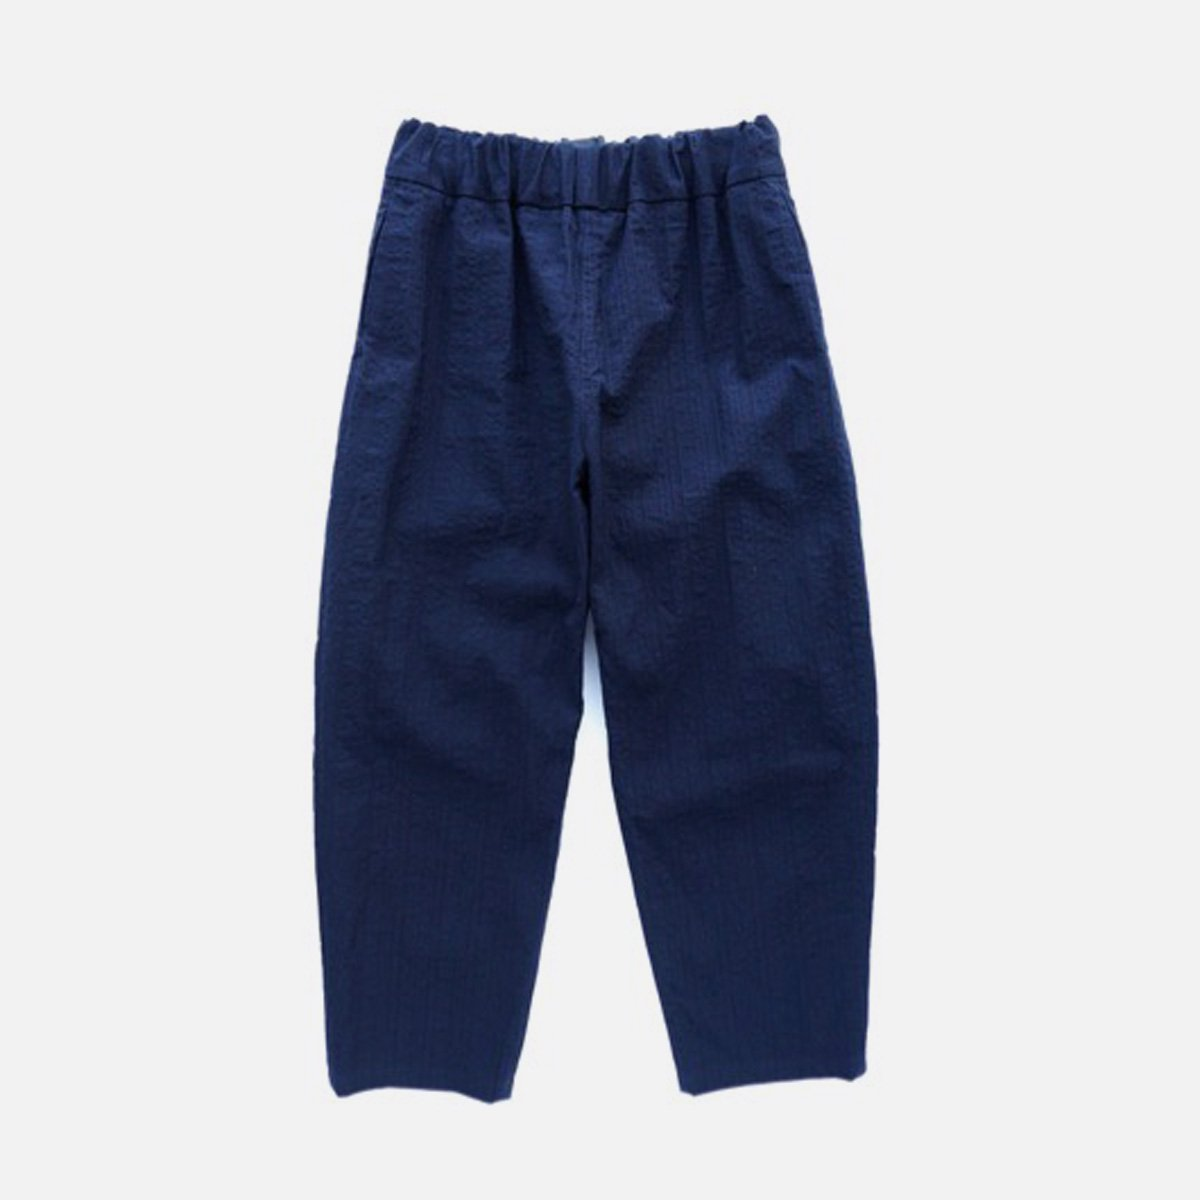 NO CONTROL AIR SALT SHRINKING COTTON PONGEE EASY PANT (navy)